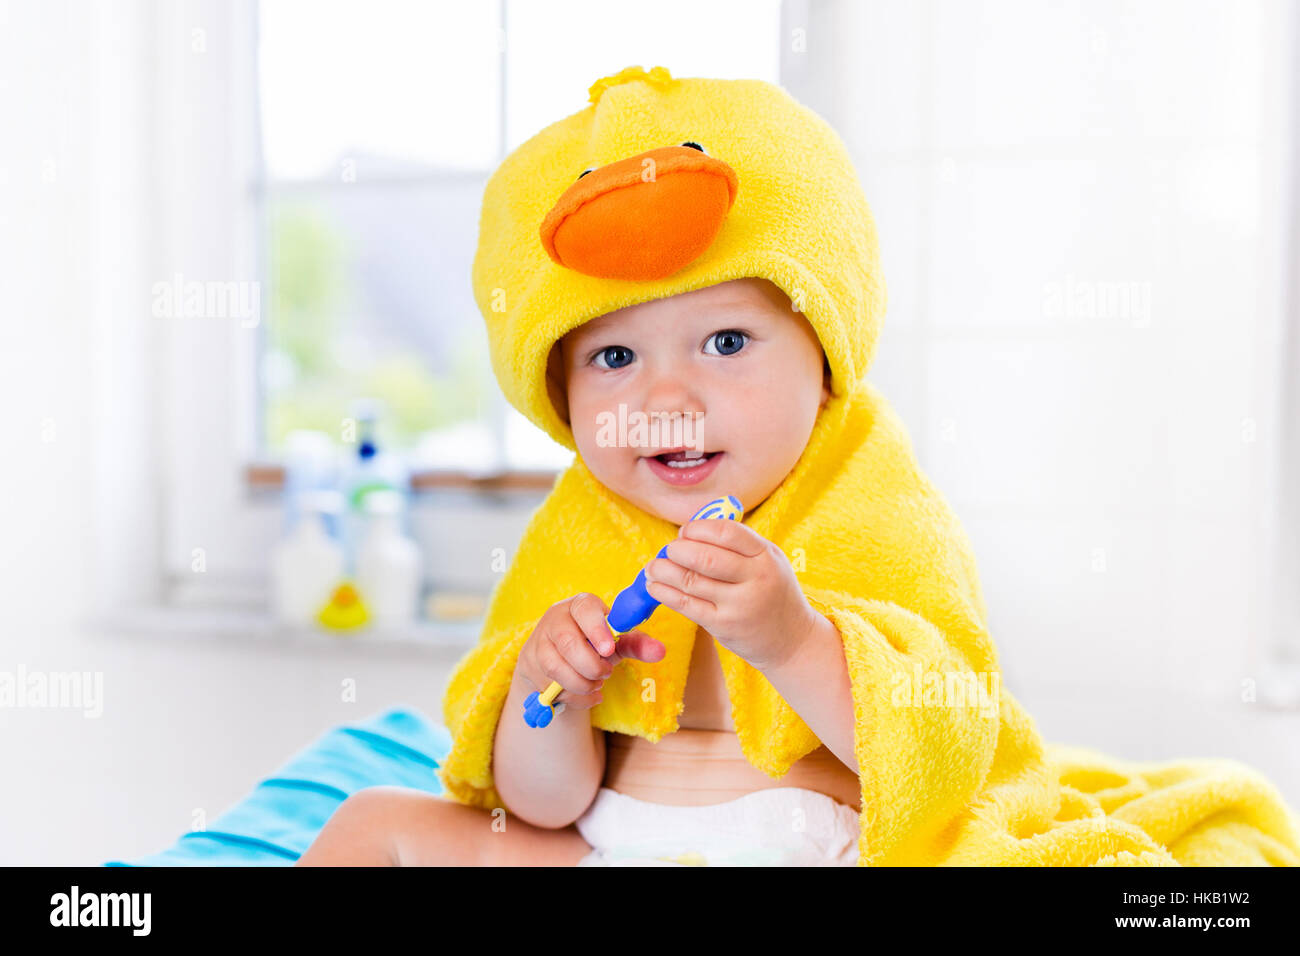 Baby week giveaway 10 angelcare infant bath support andrea dekker - Little Baby In Yellow Duck Towel Brushing Teeth On Changing Table